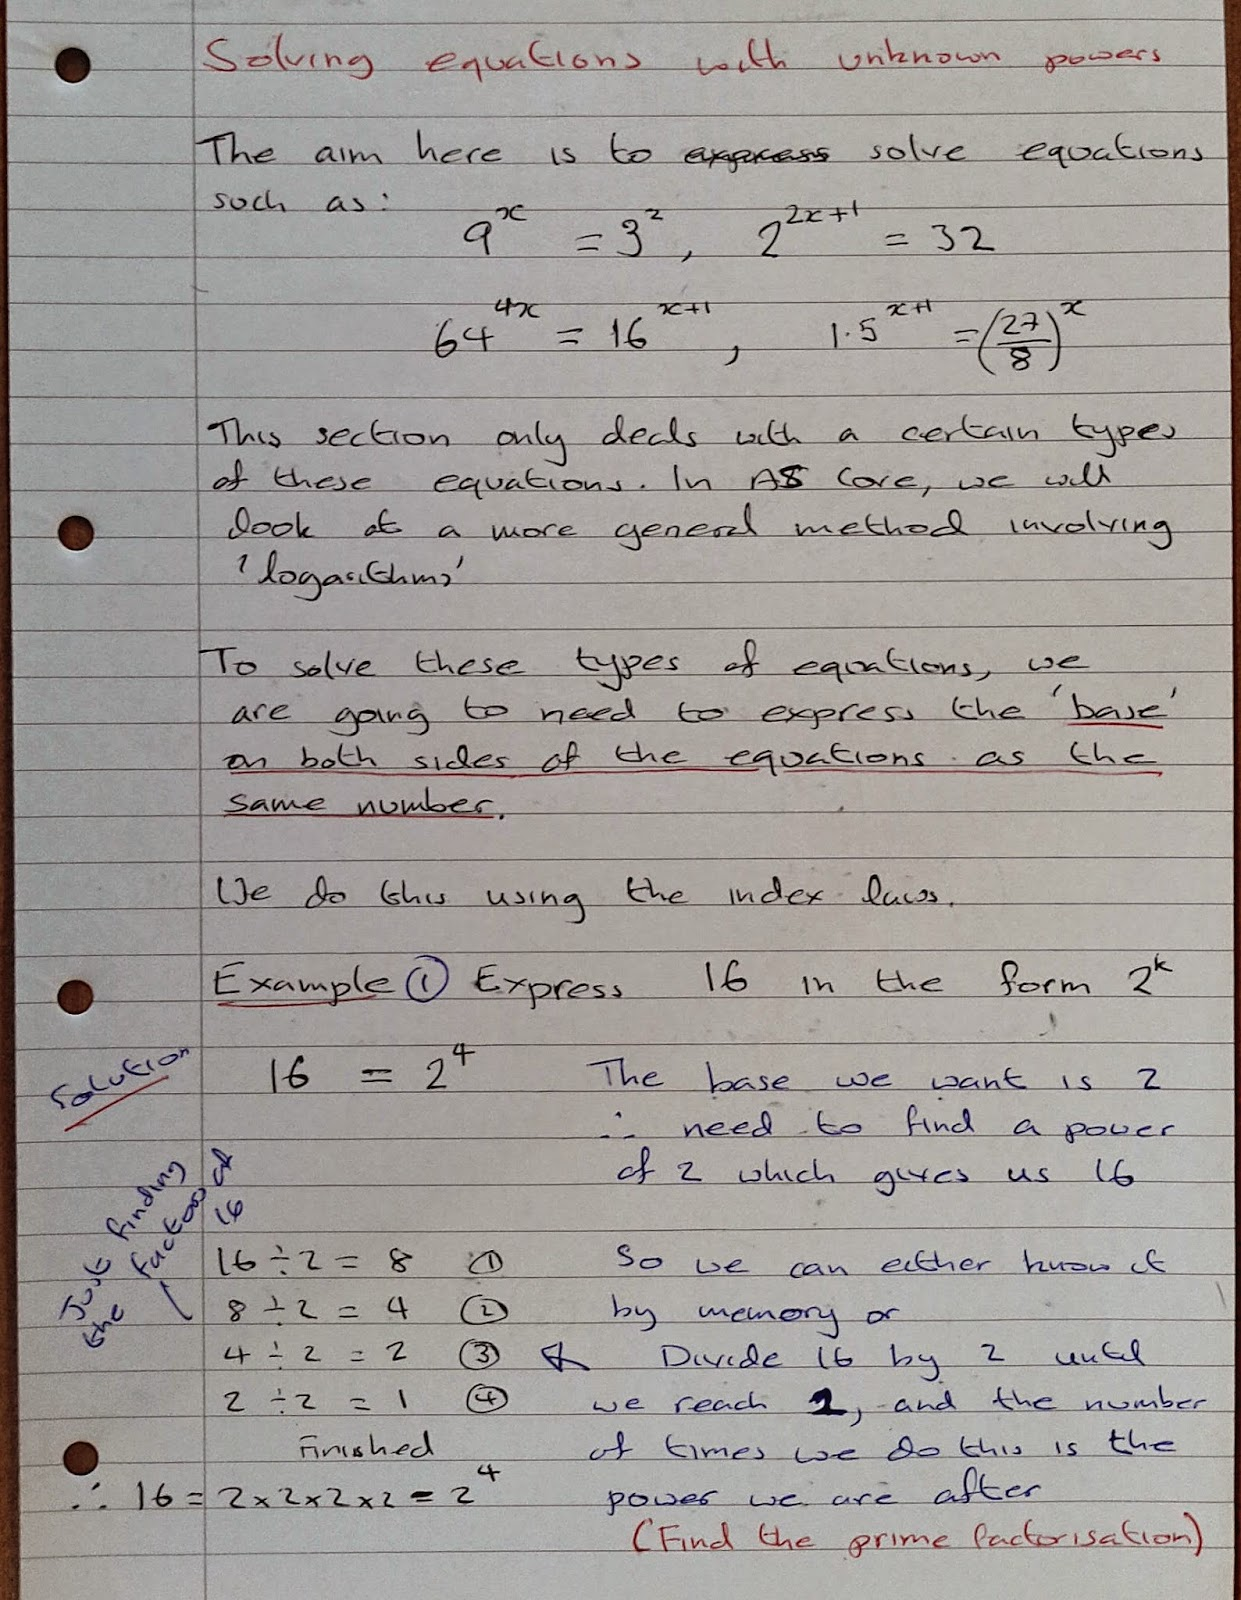 A Level Maths Notes As Indices Solving Equations With Unknown Powers Part 1